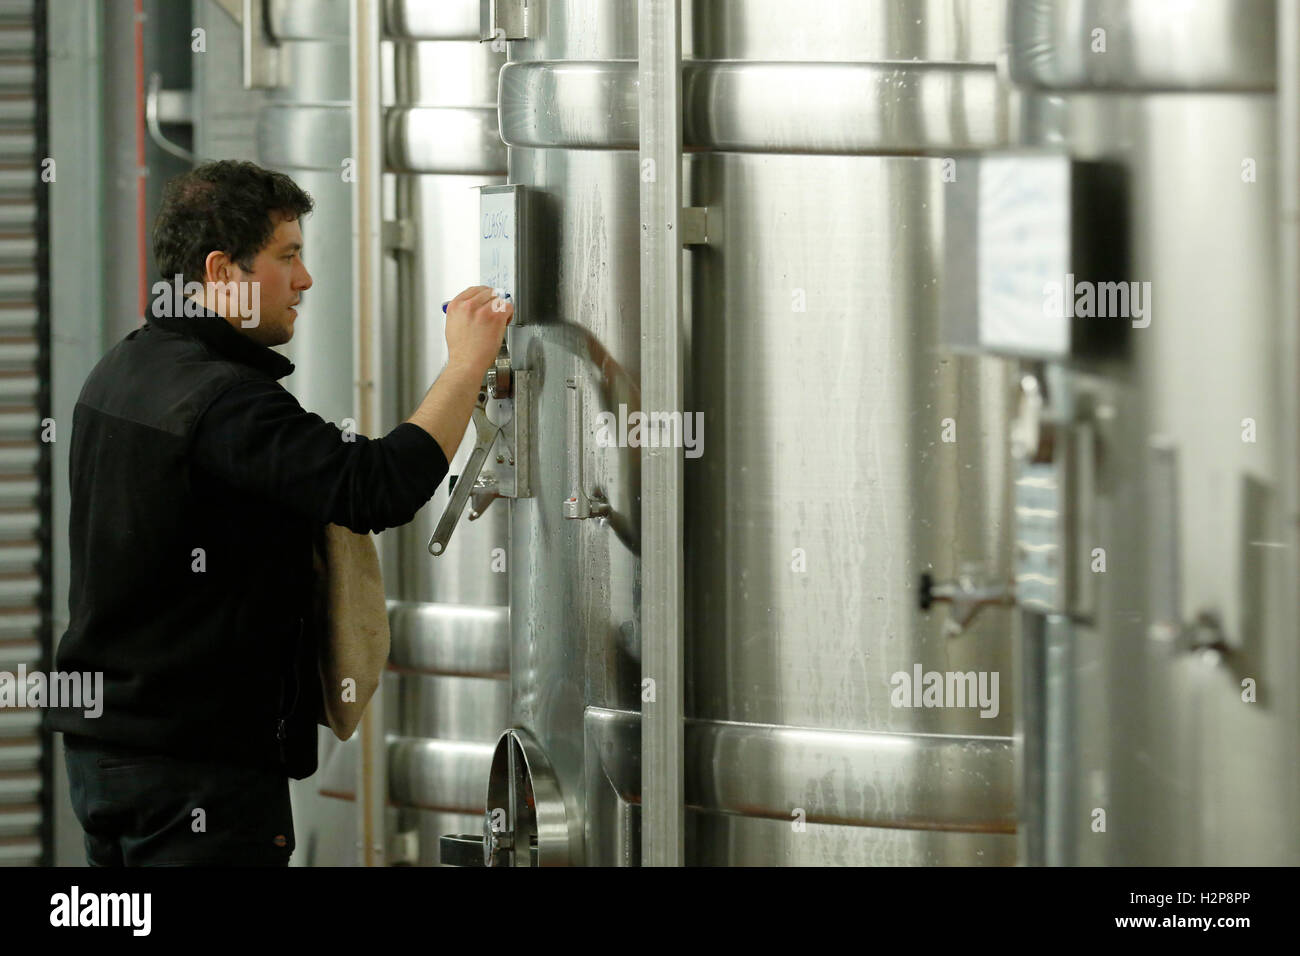 Winemaker Antoine Arnault rmakes notes on a vat at the winery of Hambledon Vineyard situated on the South Downs - Stock Image